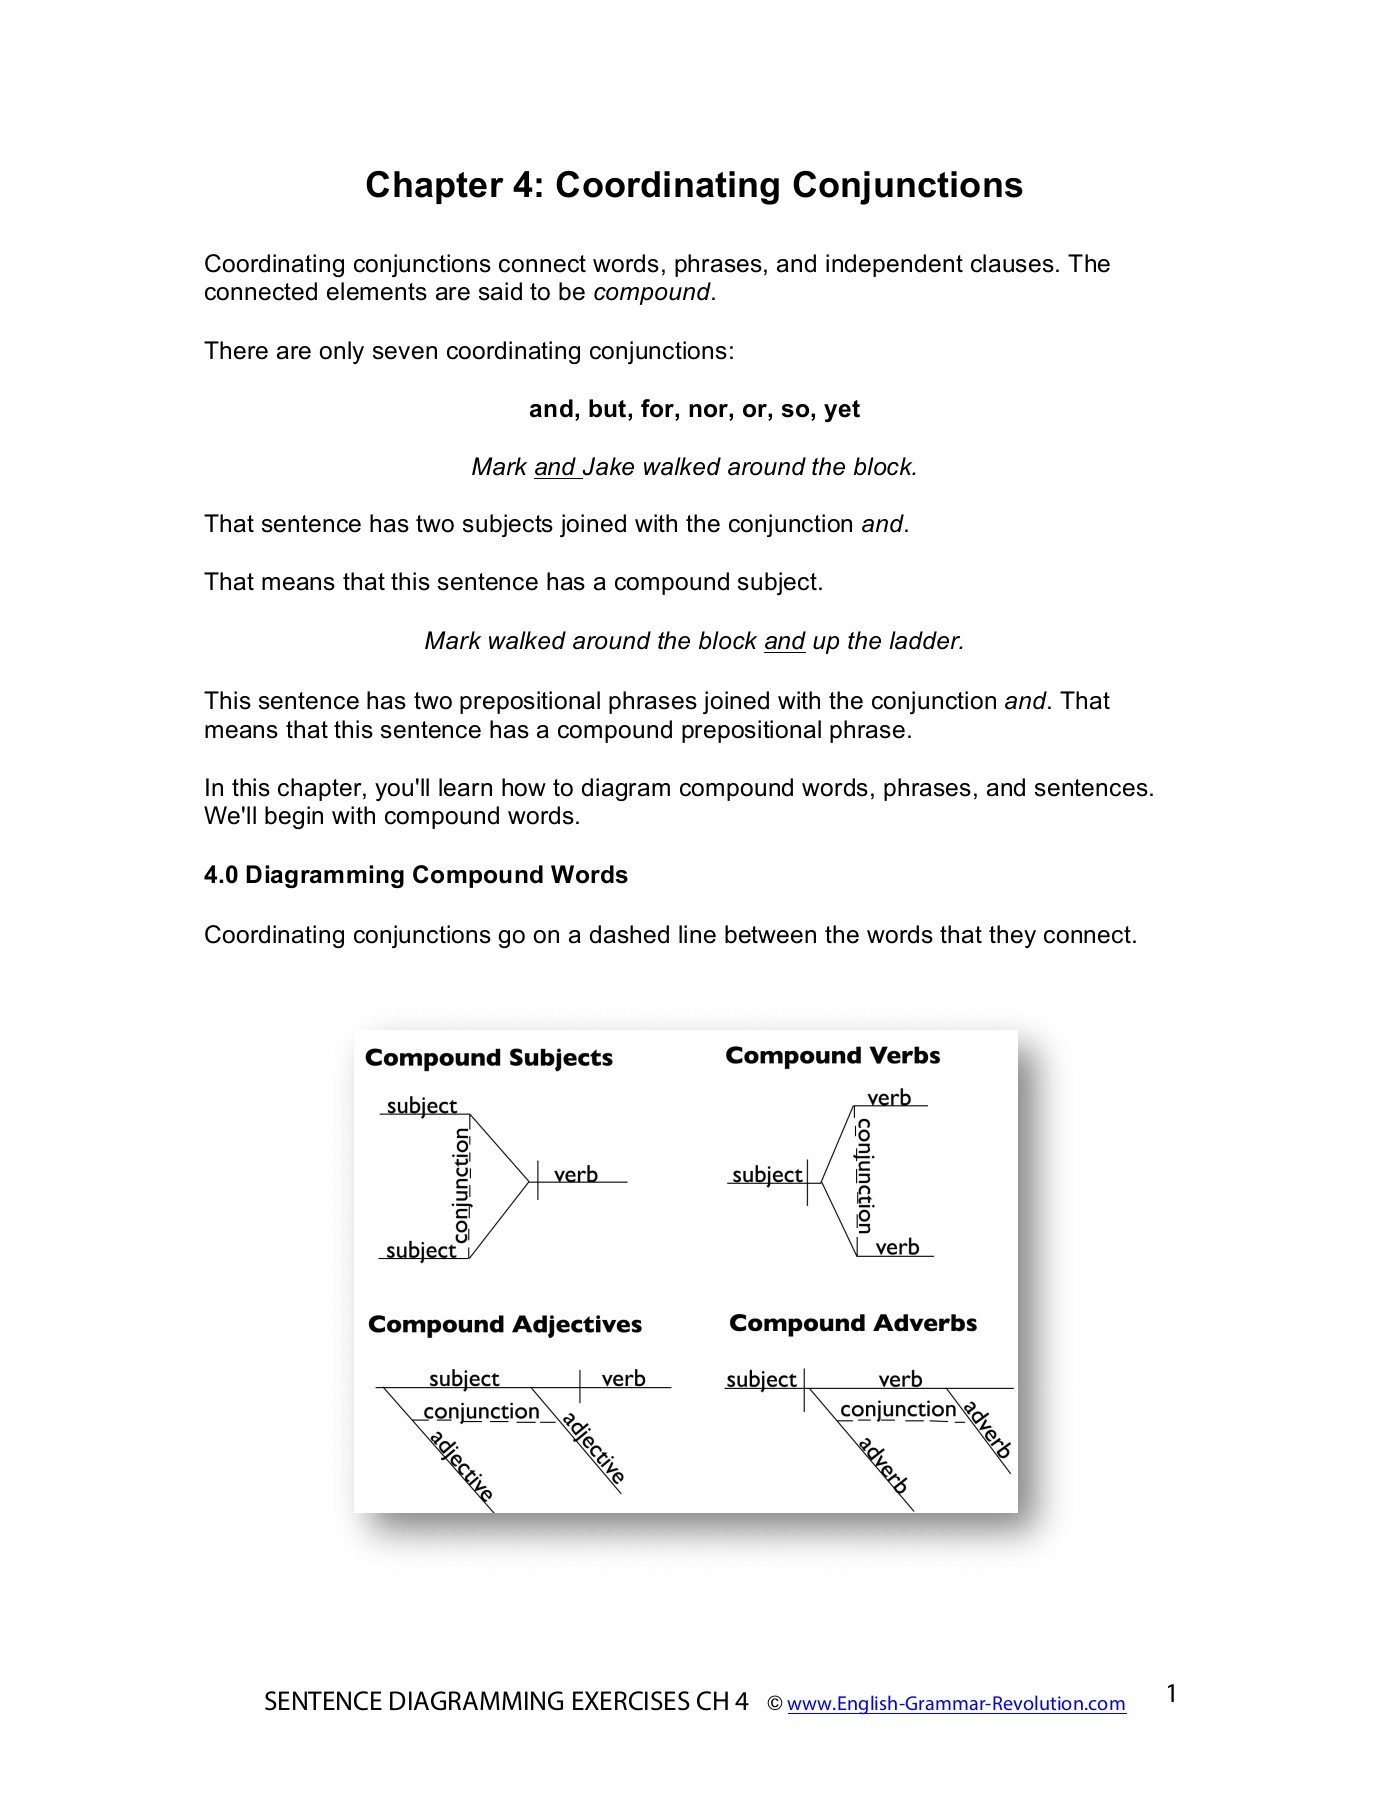 diagramming sentences with conjunctions les paul traditional 2010 chapter 4 coordinating pages 1 17 text version fliphtml5